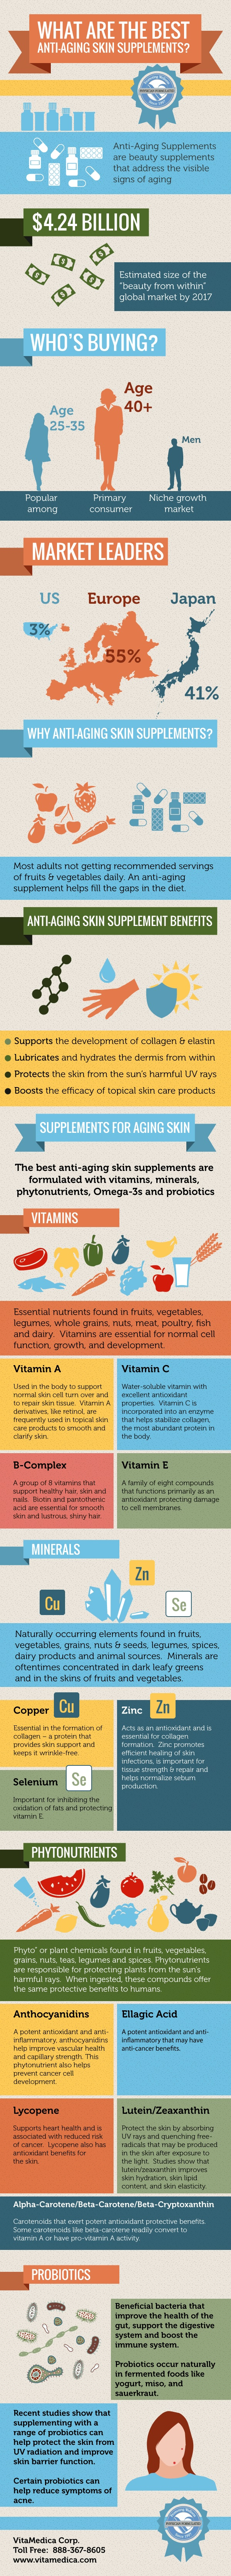 Best anti aging Skin Supplements What To Look for